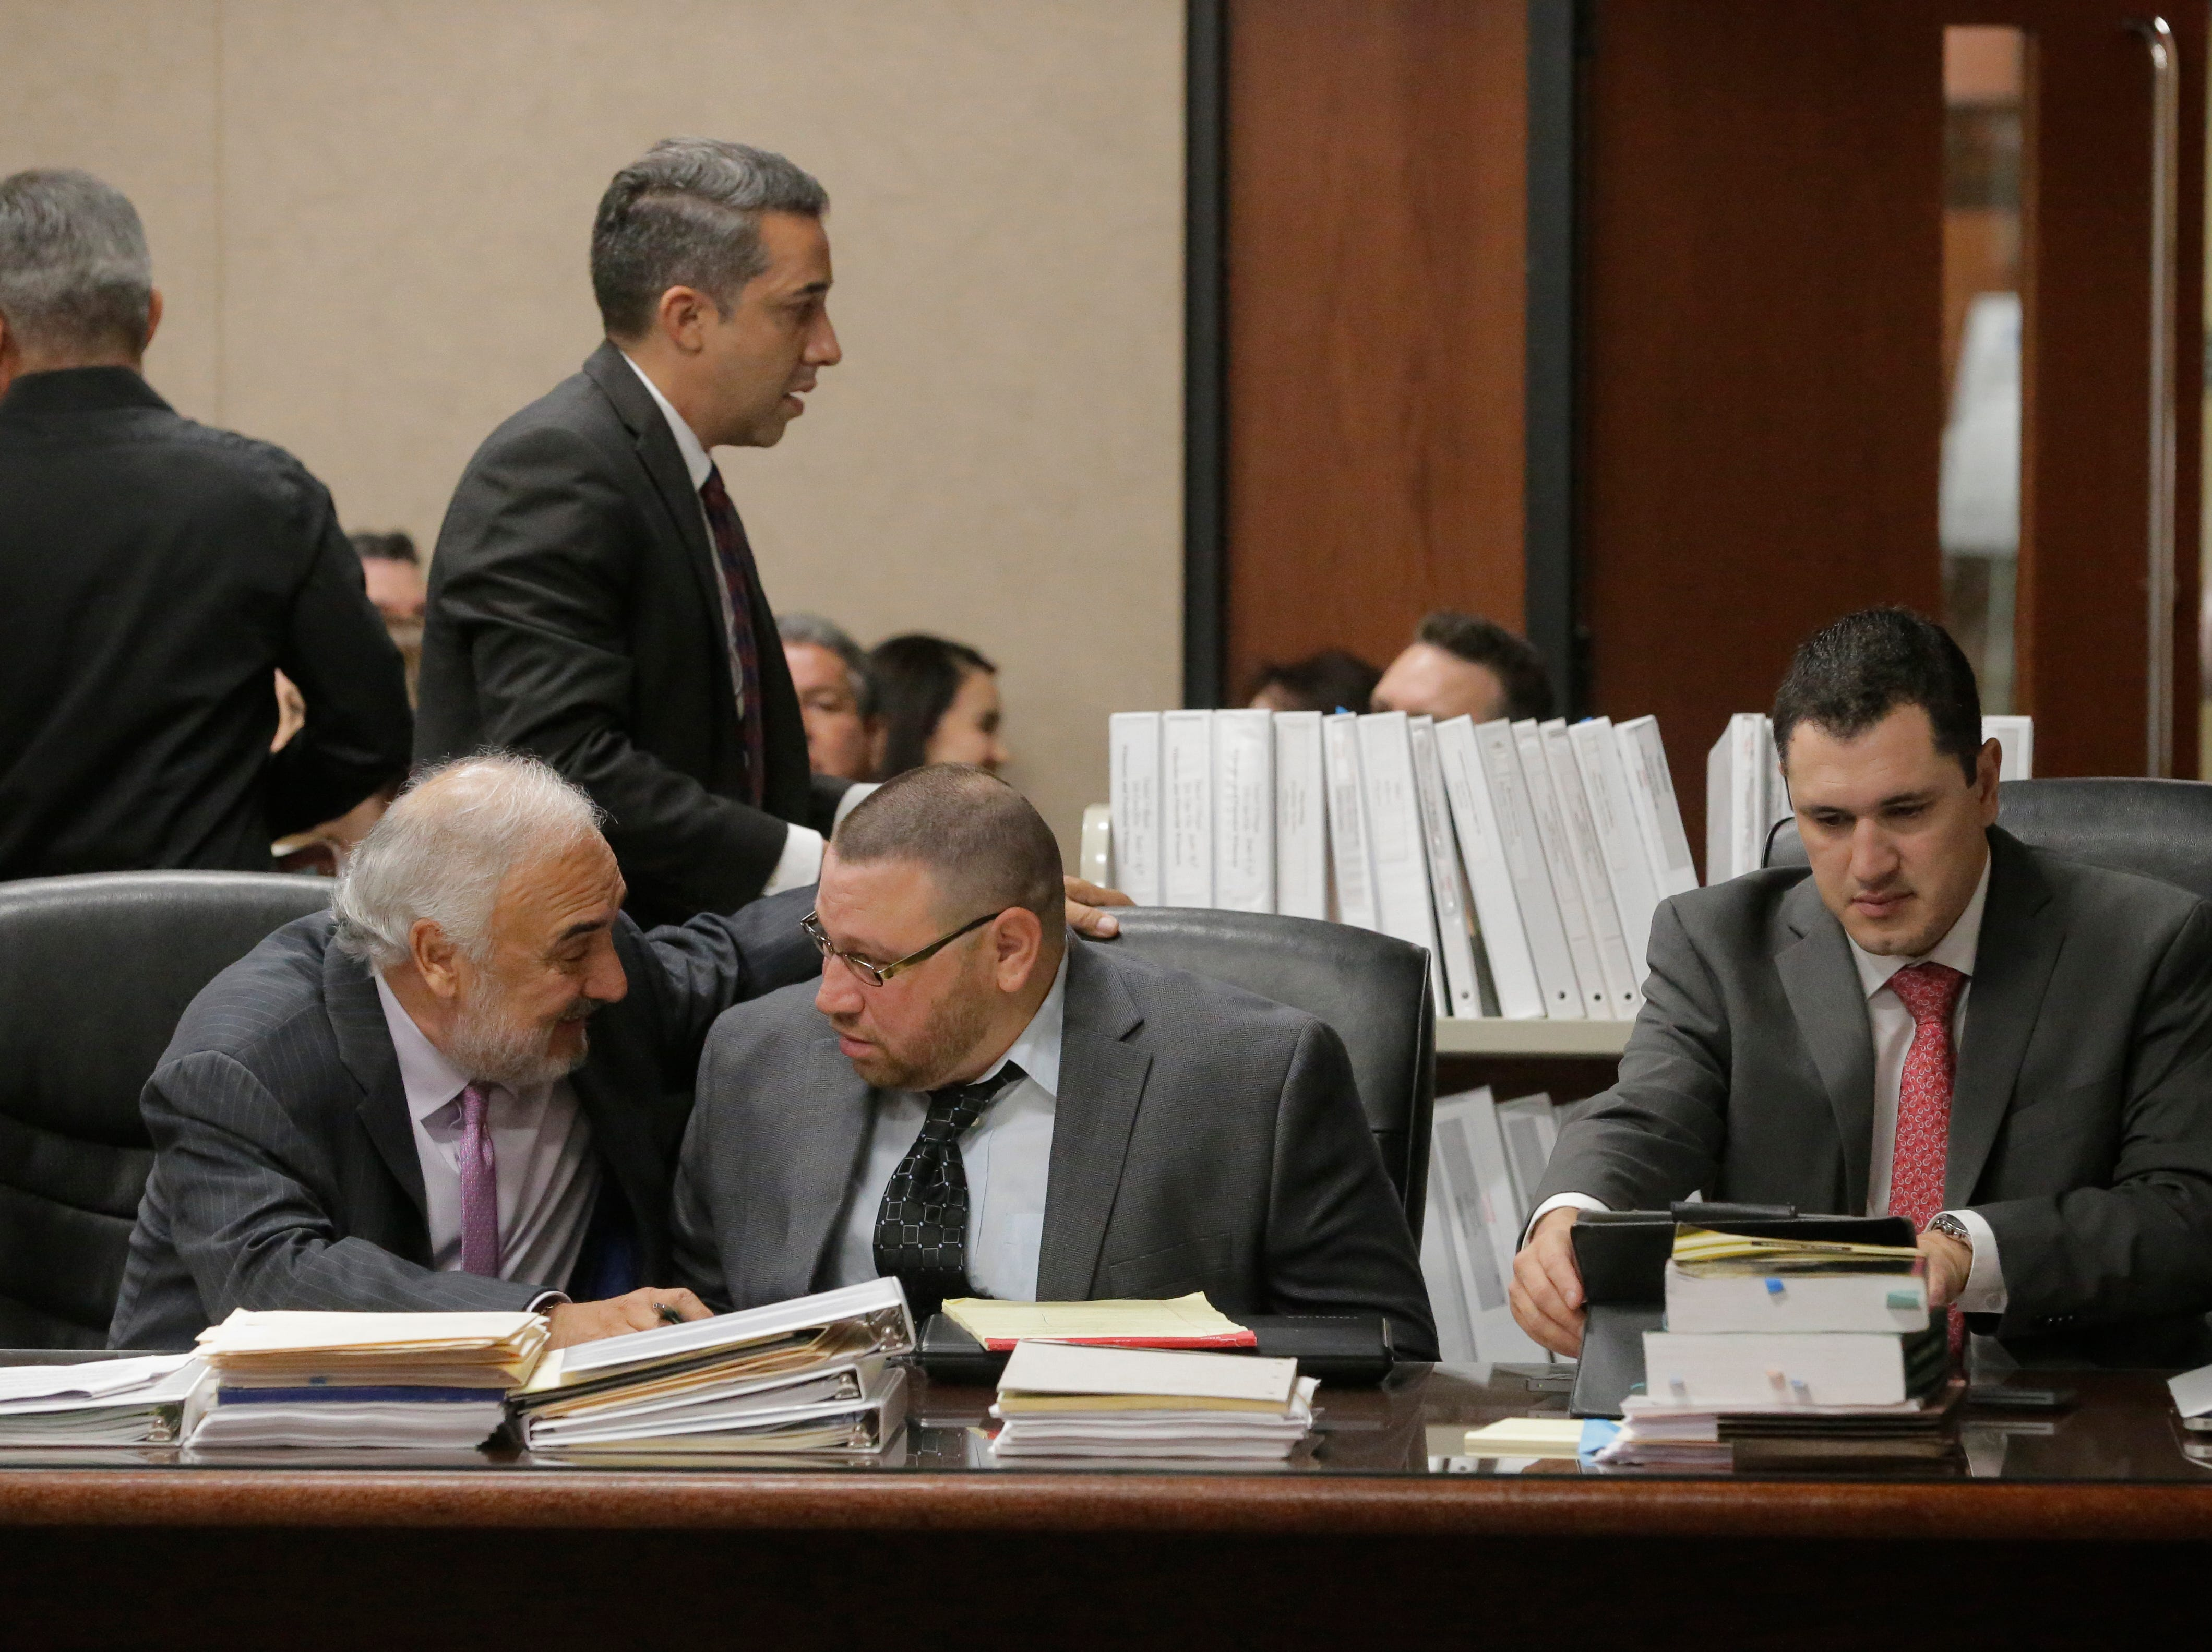 """Attorney Joe Spencer shares a moment with his client Daniel Villegas before opening statements were delivered in the opening day of Villegas' third trial. Villegas is charged with Capital Murder in connection in the 1993 deaths of Armando """"Mando"""" Lazo and Bobby England. Villegas, who was 16 years old at the time, was allegedly a member of a street gang that shot at four teens, fatally striking Lazo and England on April 10, 1993."""